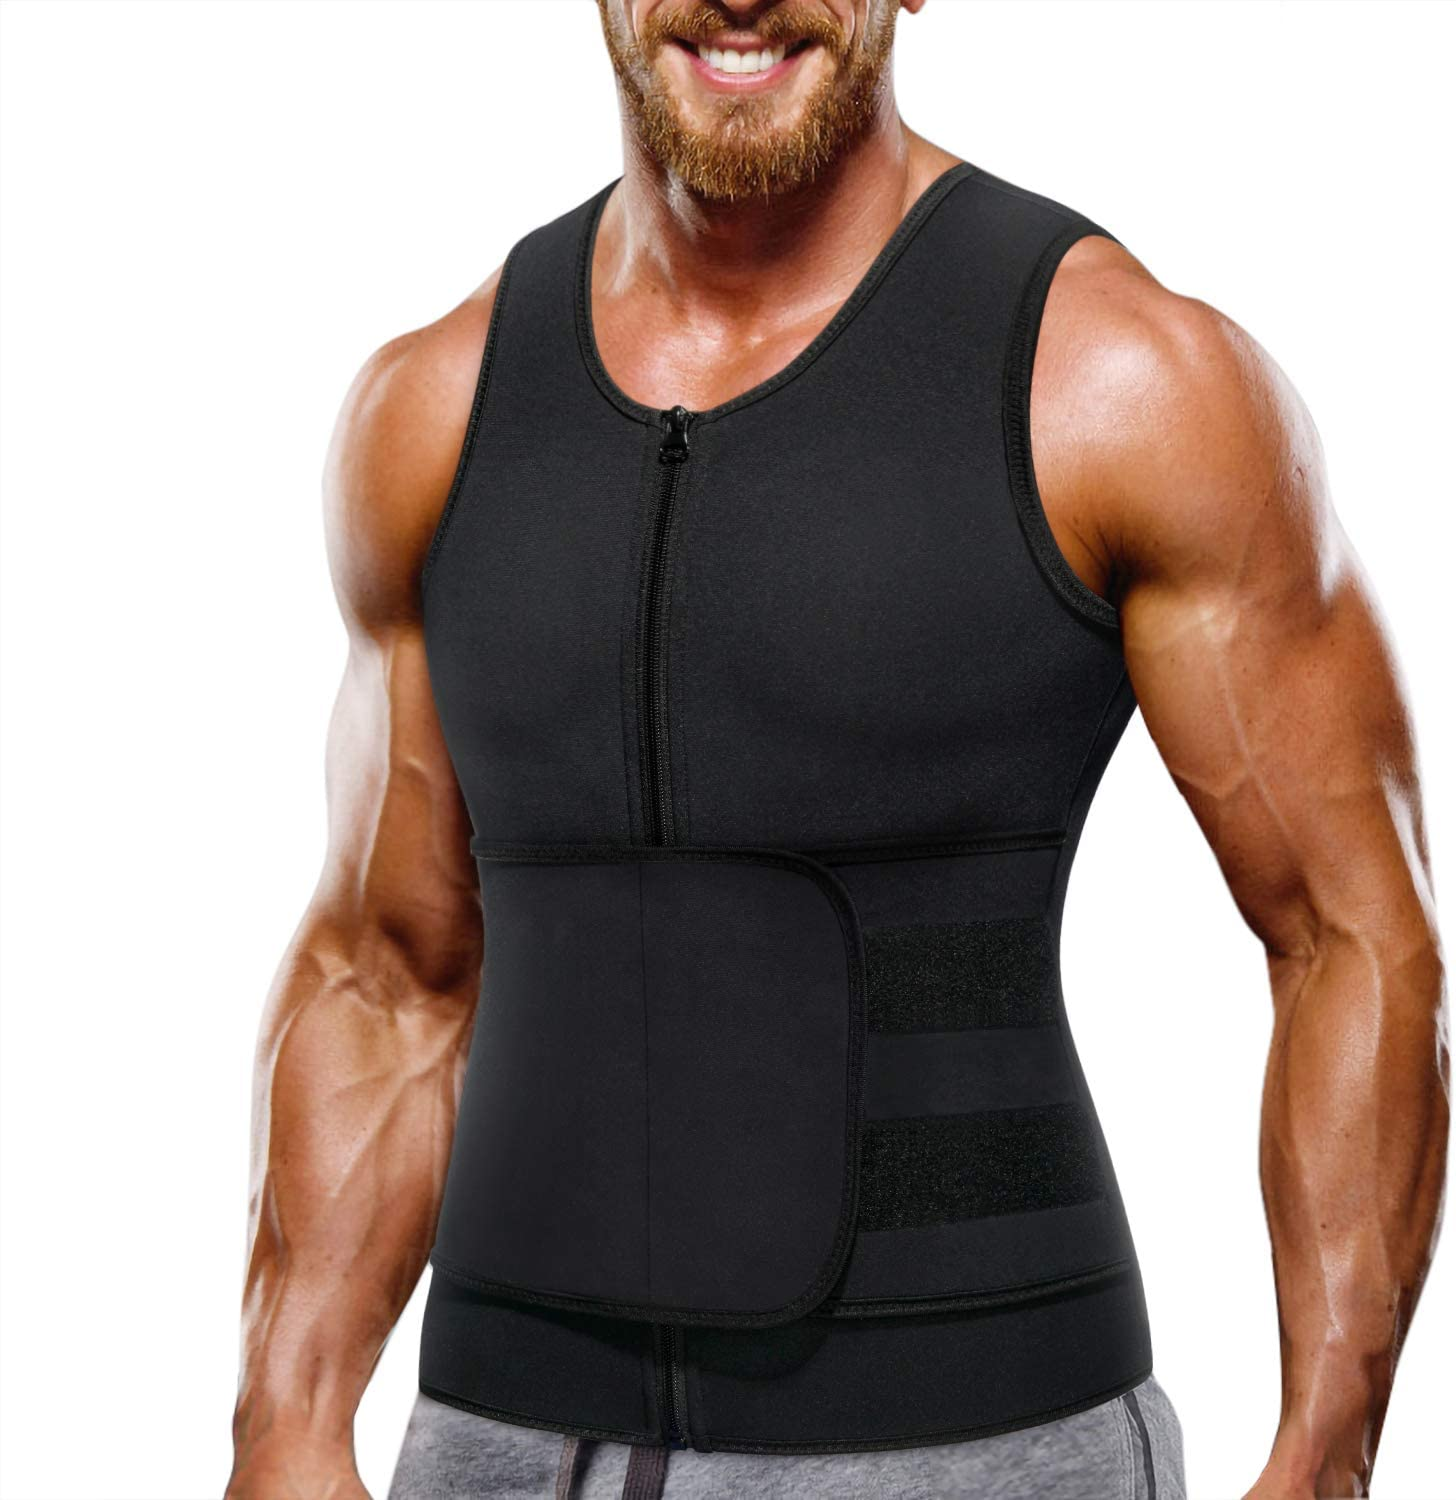 Wonderience Neoprene Sauna Suit for Men Waist Trainer Vest Zipper Body Shaper with Adjustable Tank Top